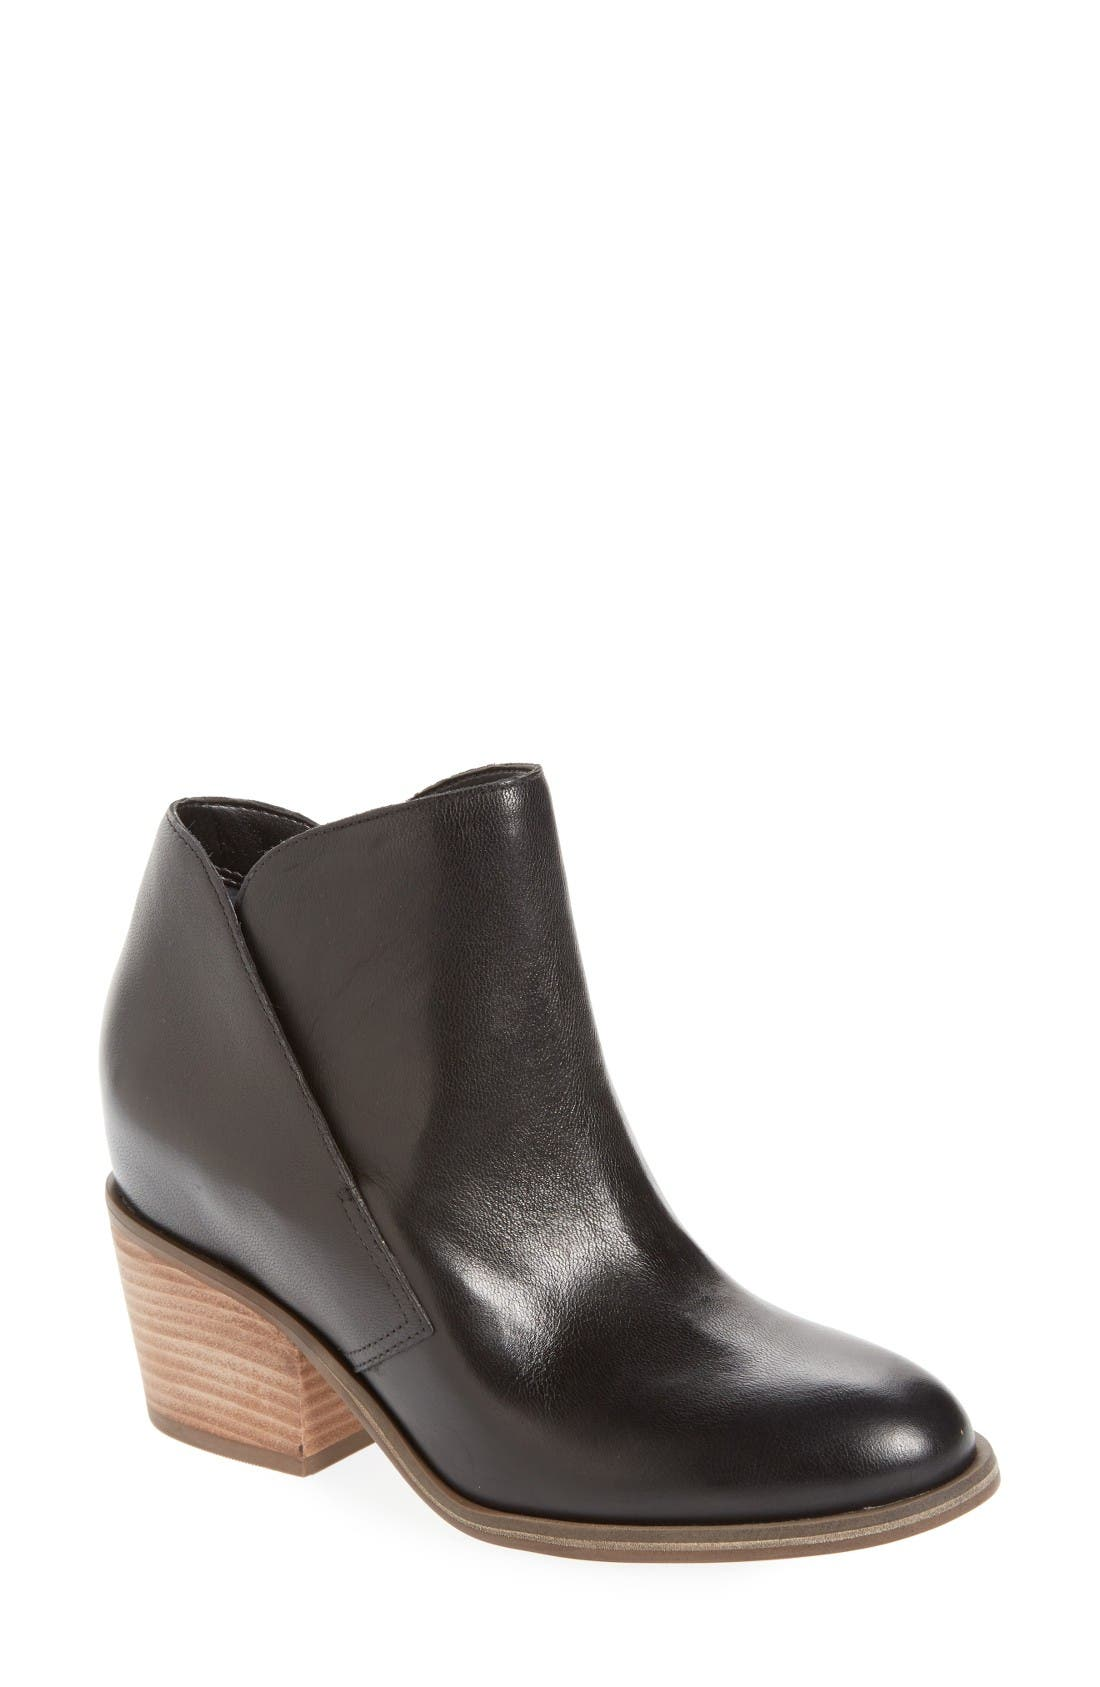 Alternate Image 1 Selected - Jessica Simpson Tandra Bootie (Women)